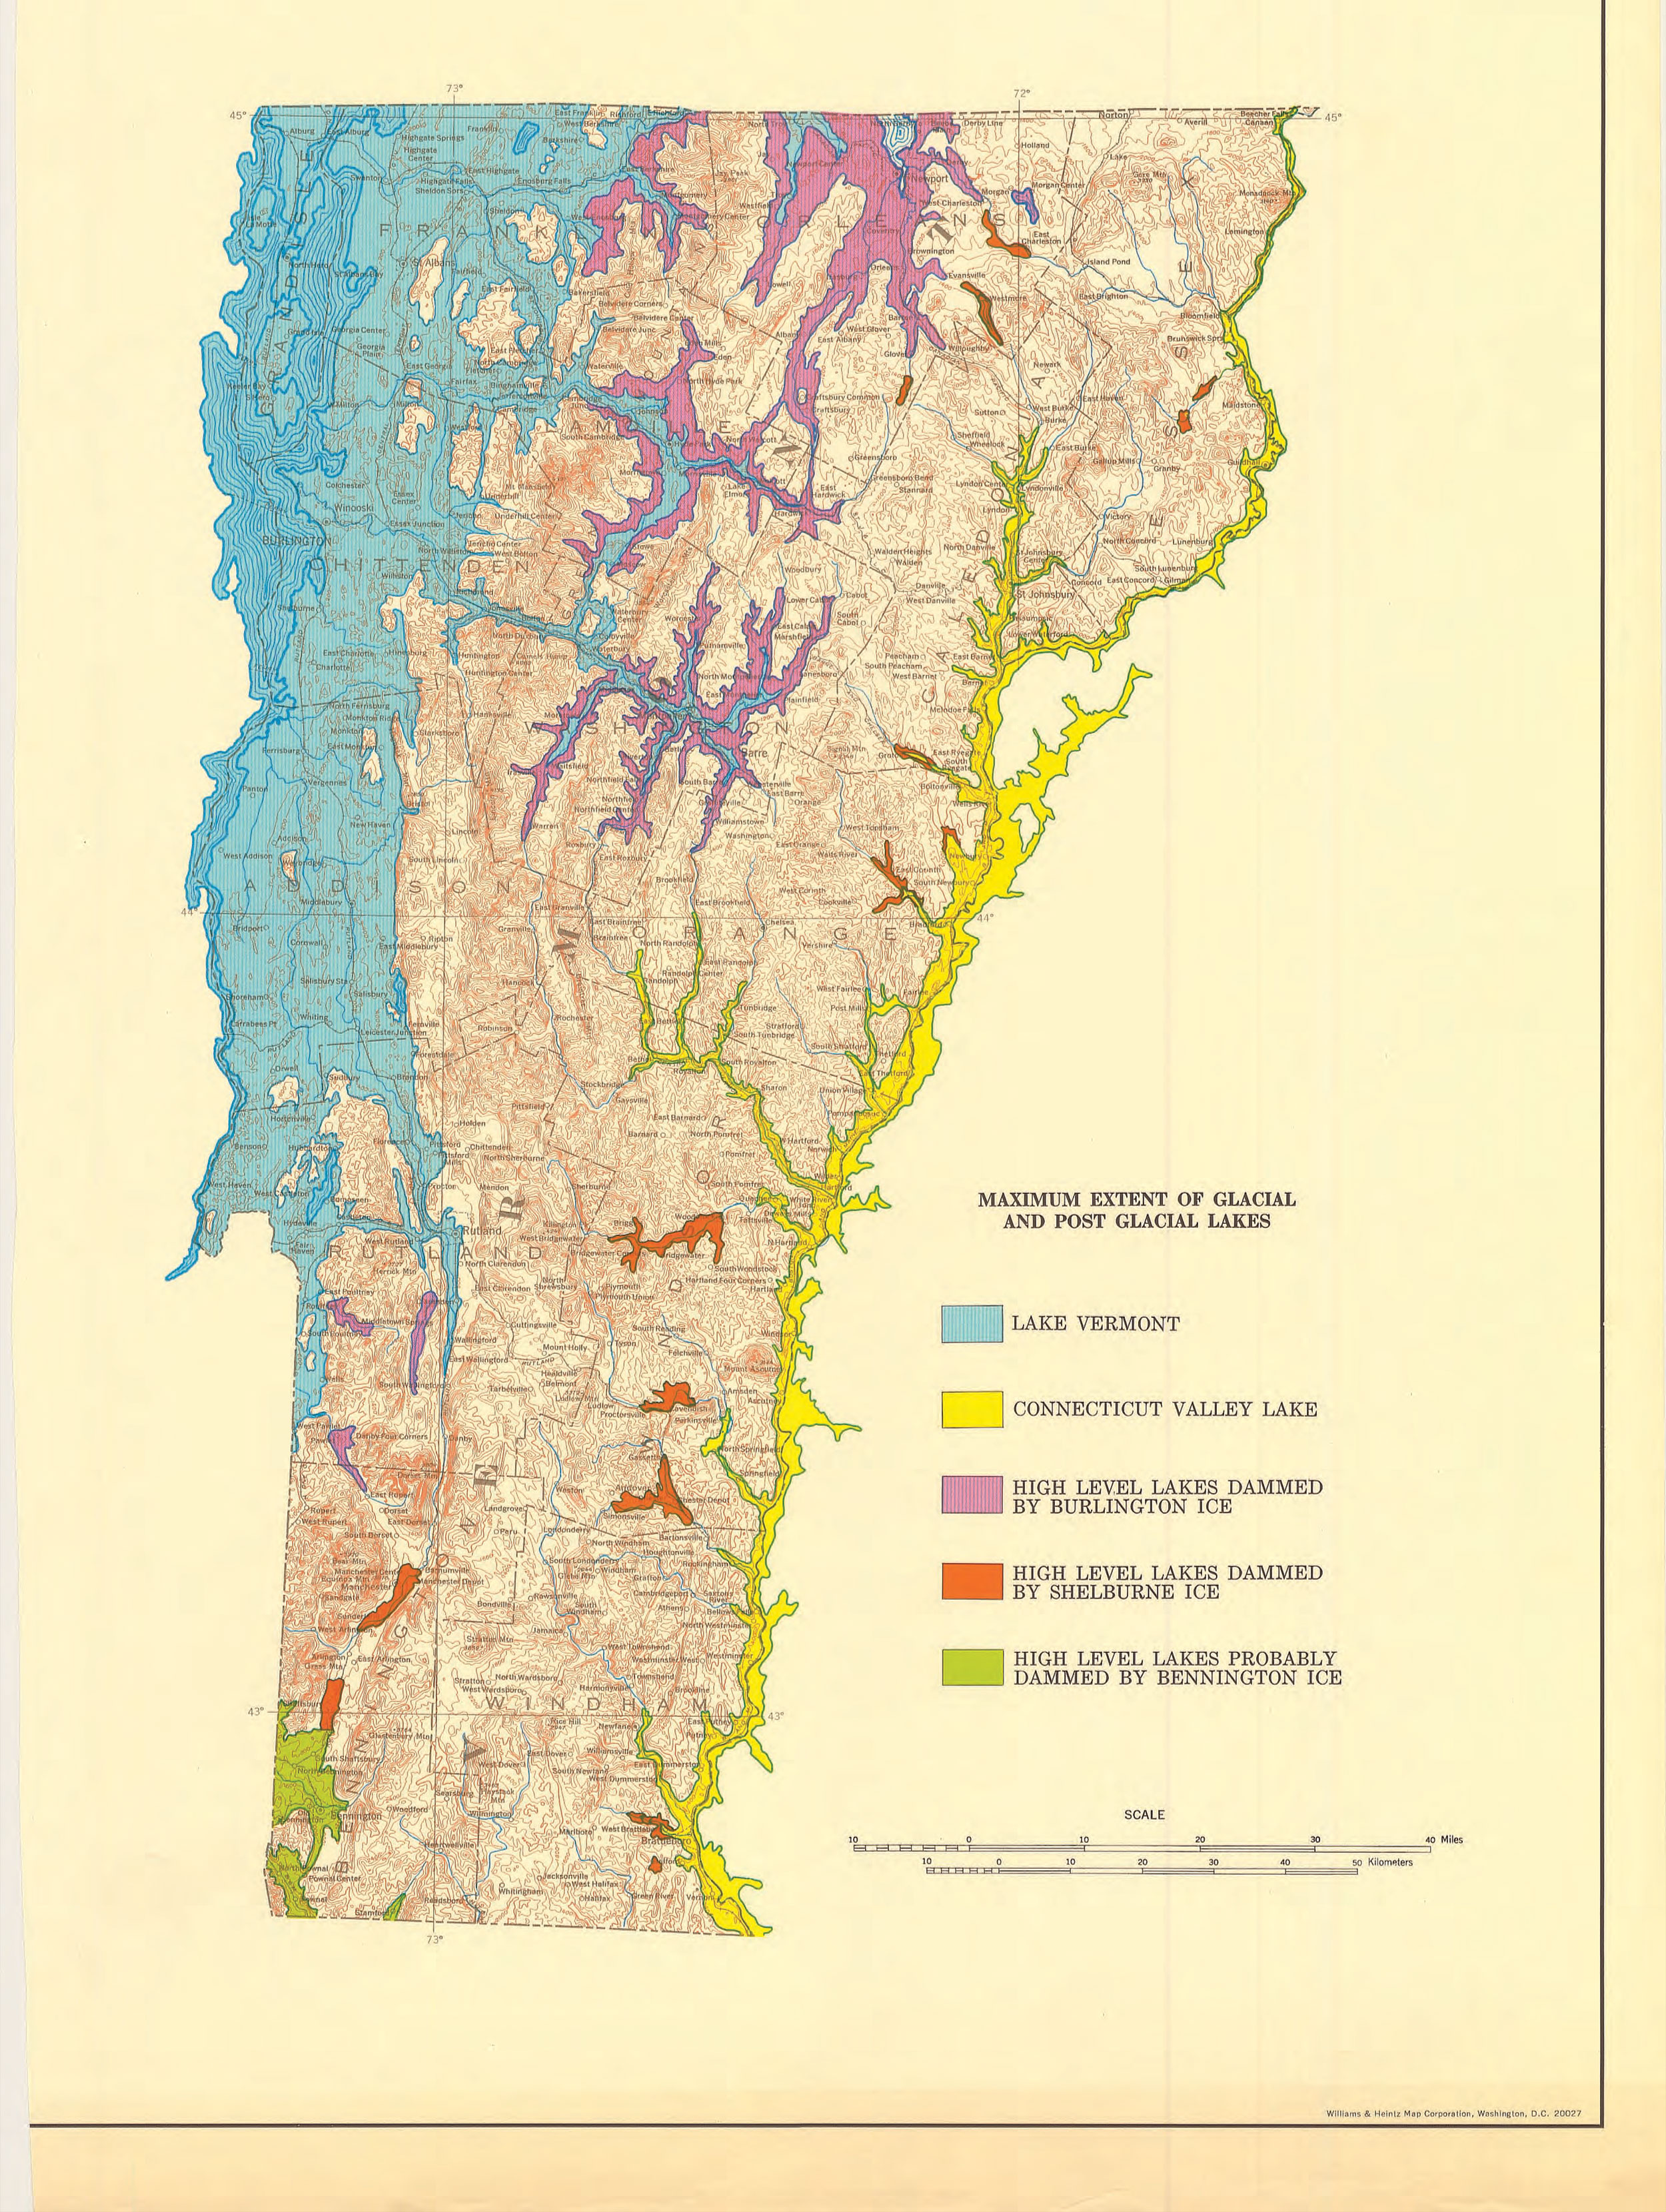 geologic map of vermont The Uvm Place Program geologic map of vermont